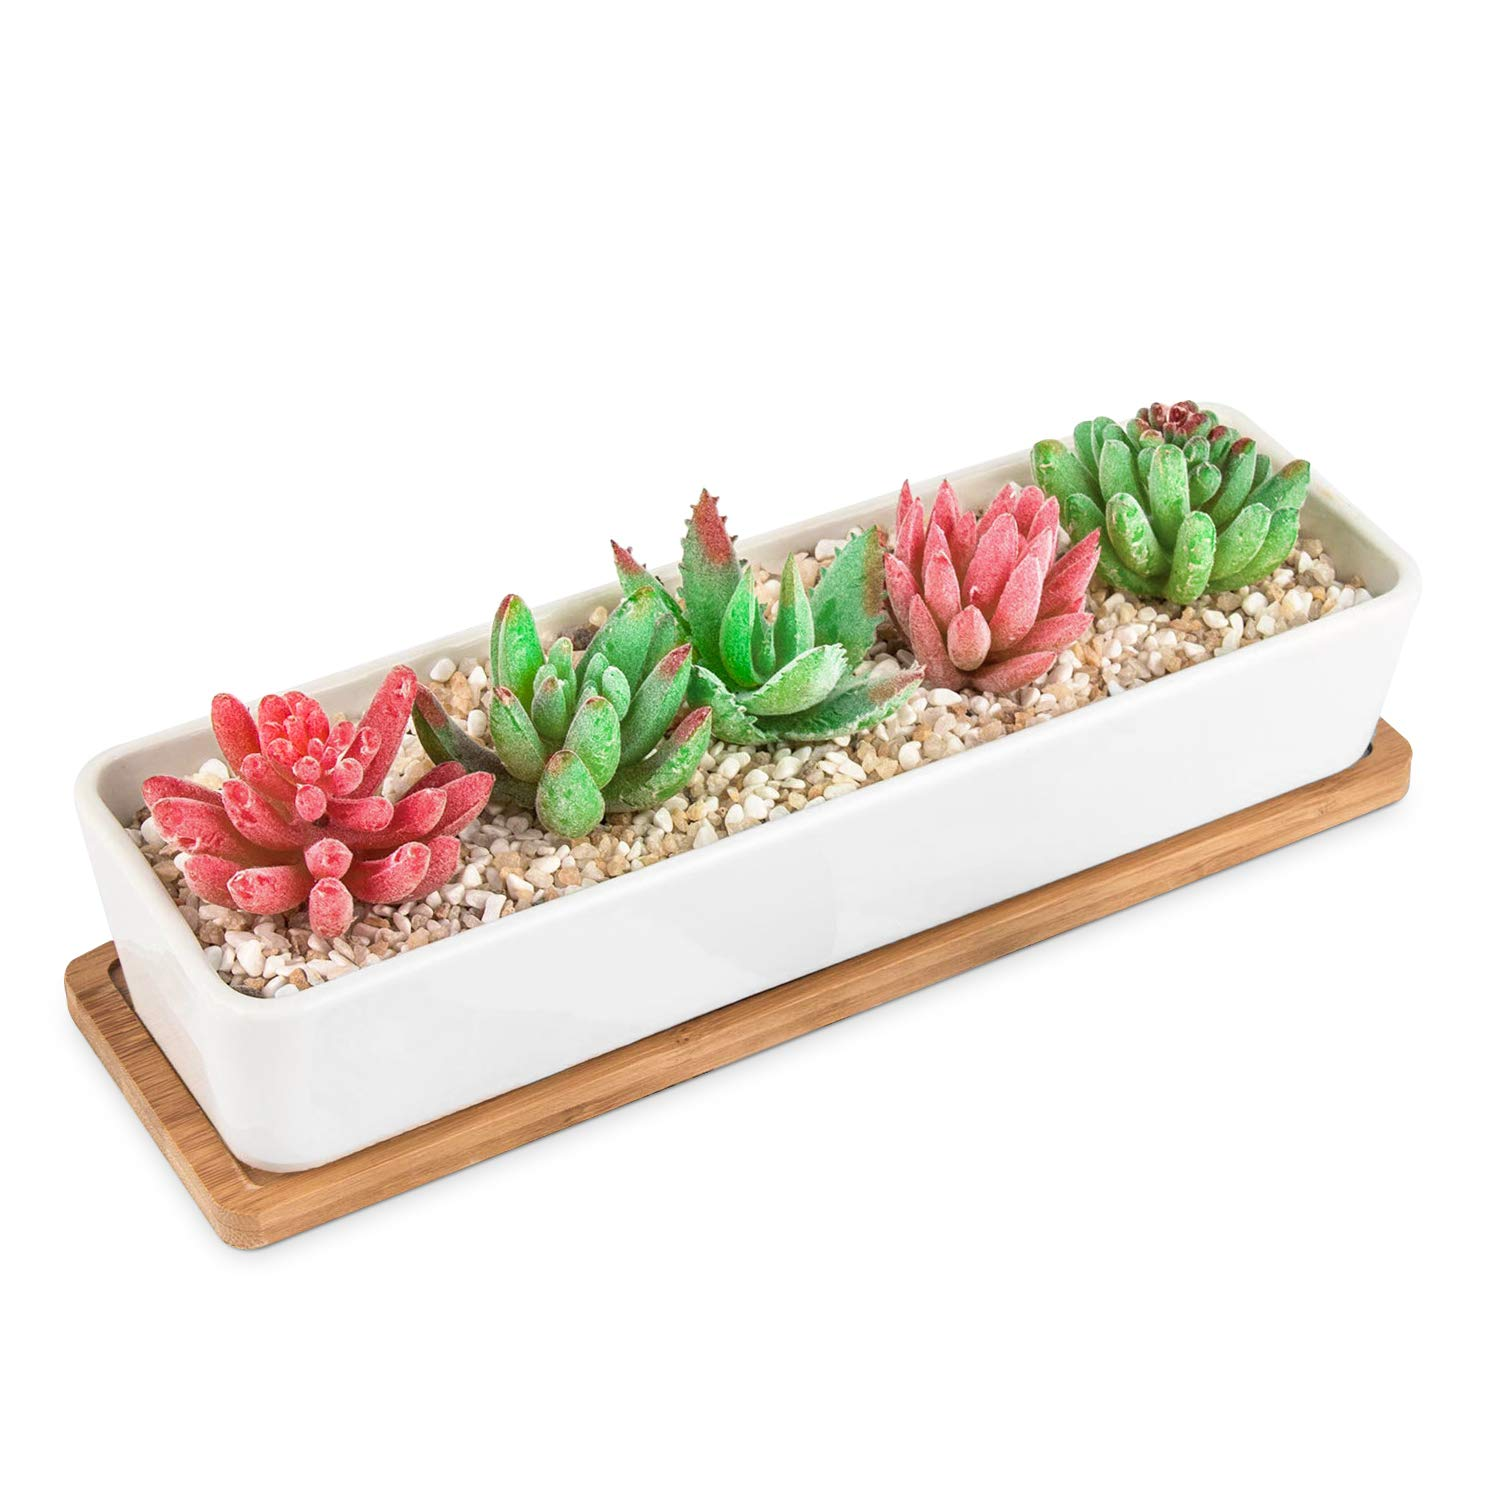 HOMENOTE Larger Rectangle Planter Pots Size 11.1 x 3.54 x 2.17 inch for Small Succulent Plants Long White Ceramic Succulent Planter Pots with Drainage Hole and Bamboo Tray